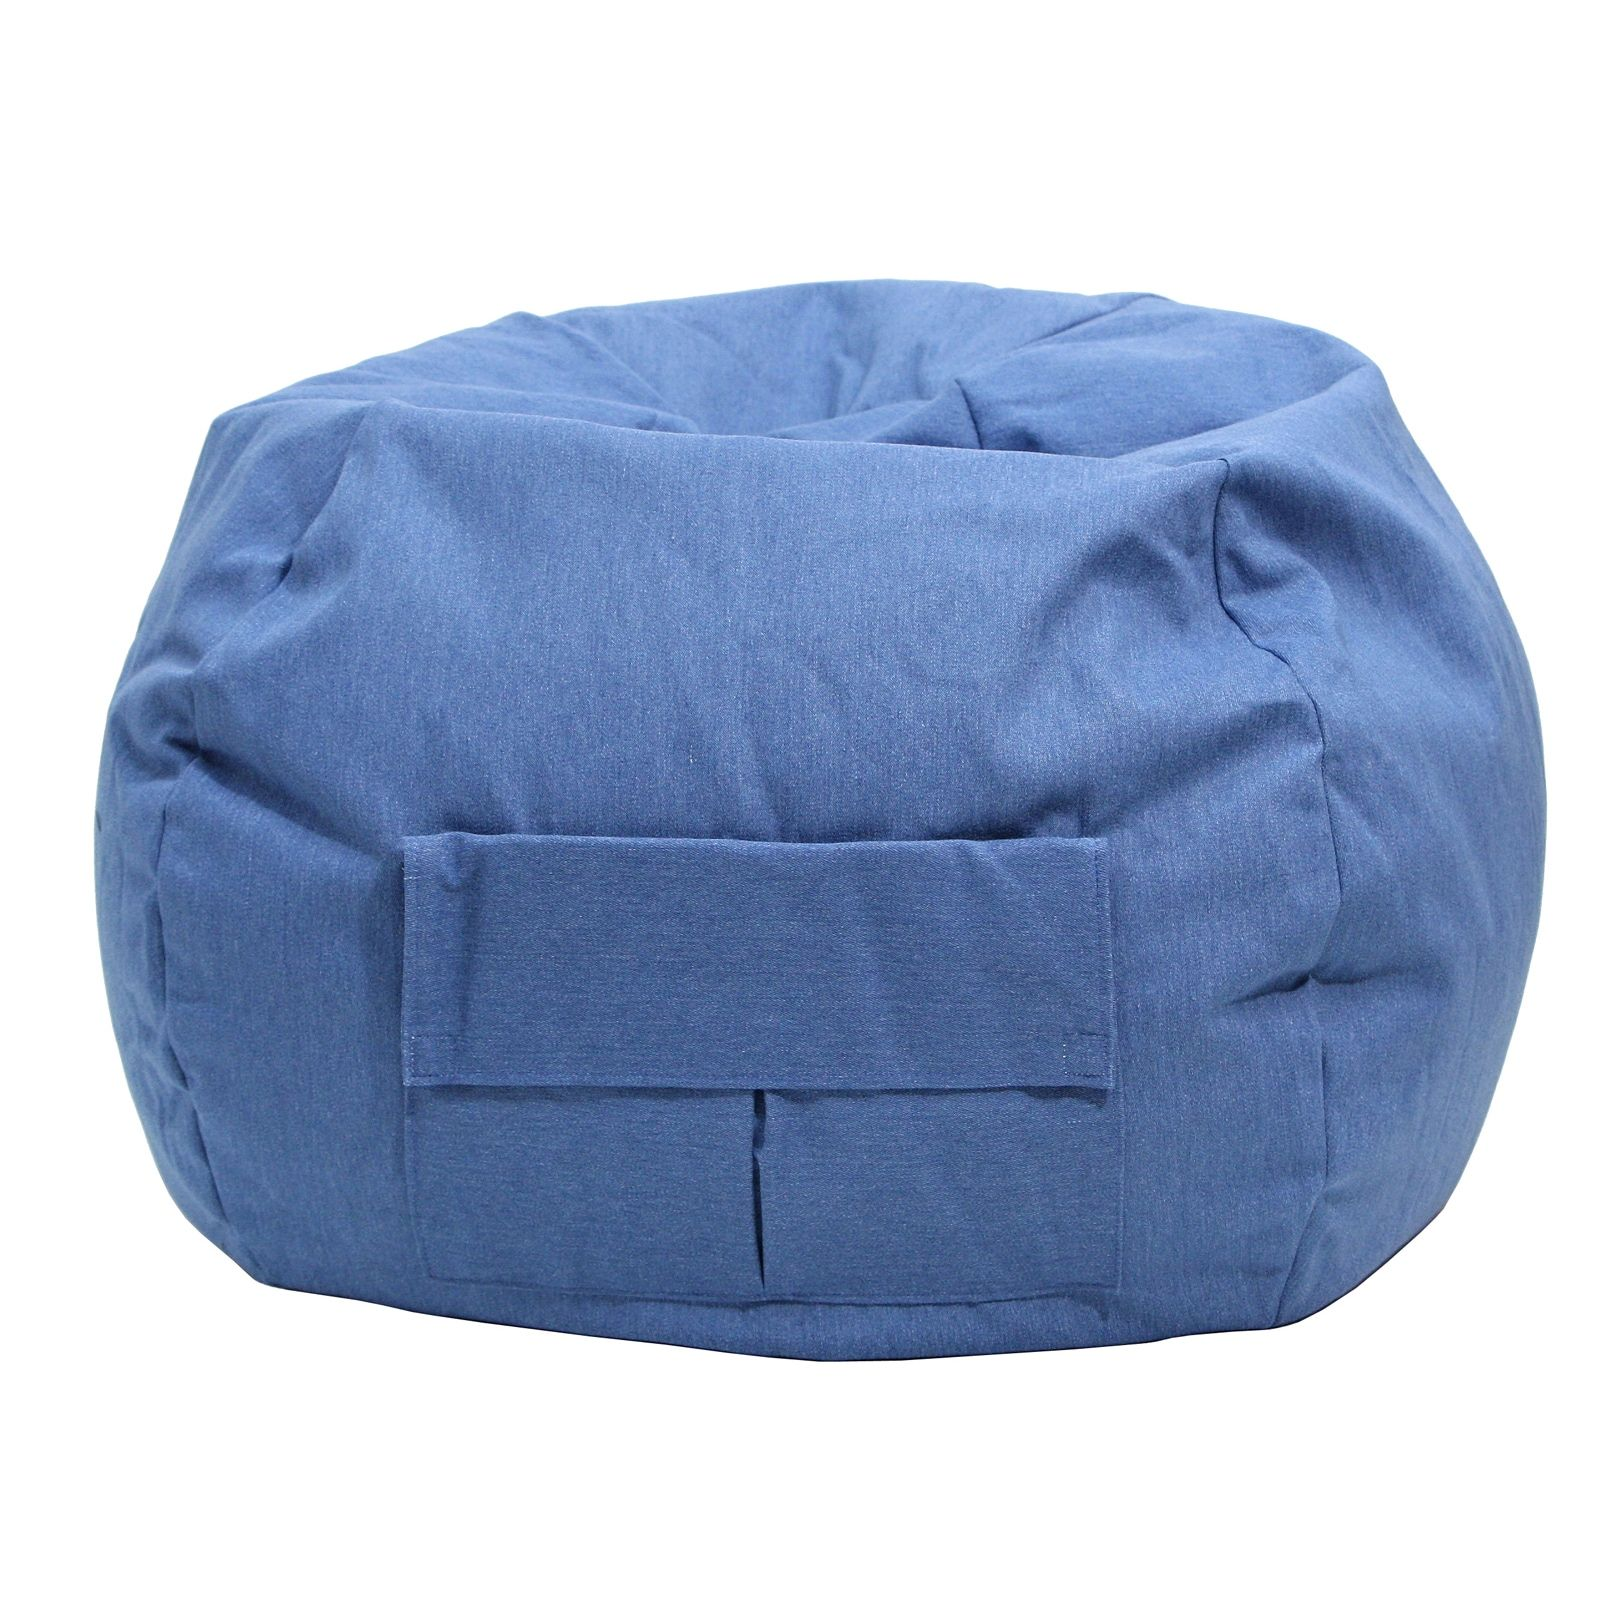 Blue Bean Bag Chairs Buy Office Gold Medal Cargo Pocket Denim Look Extra Large